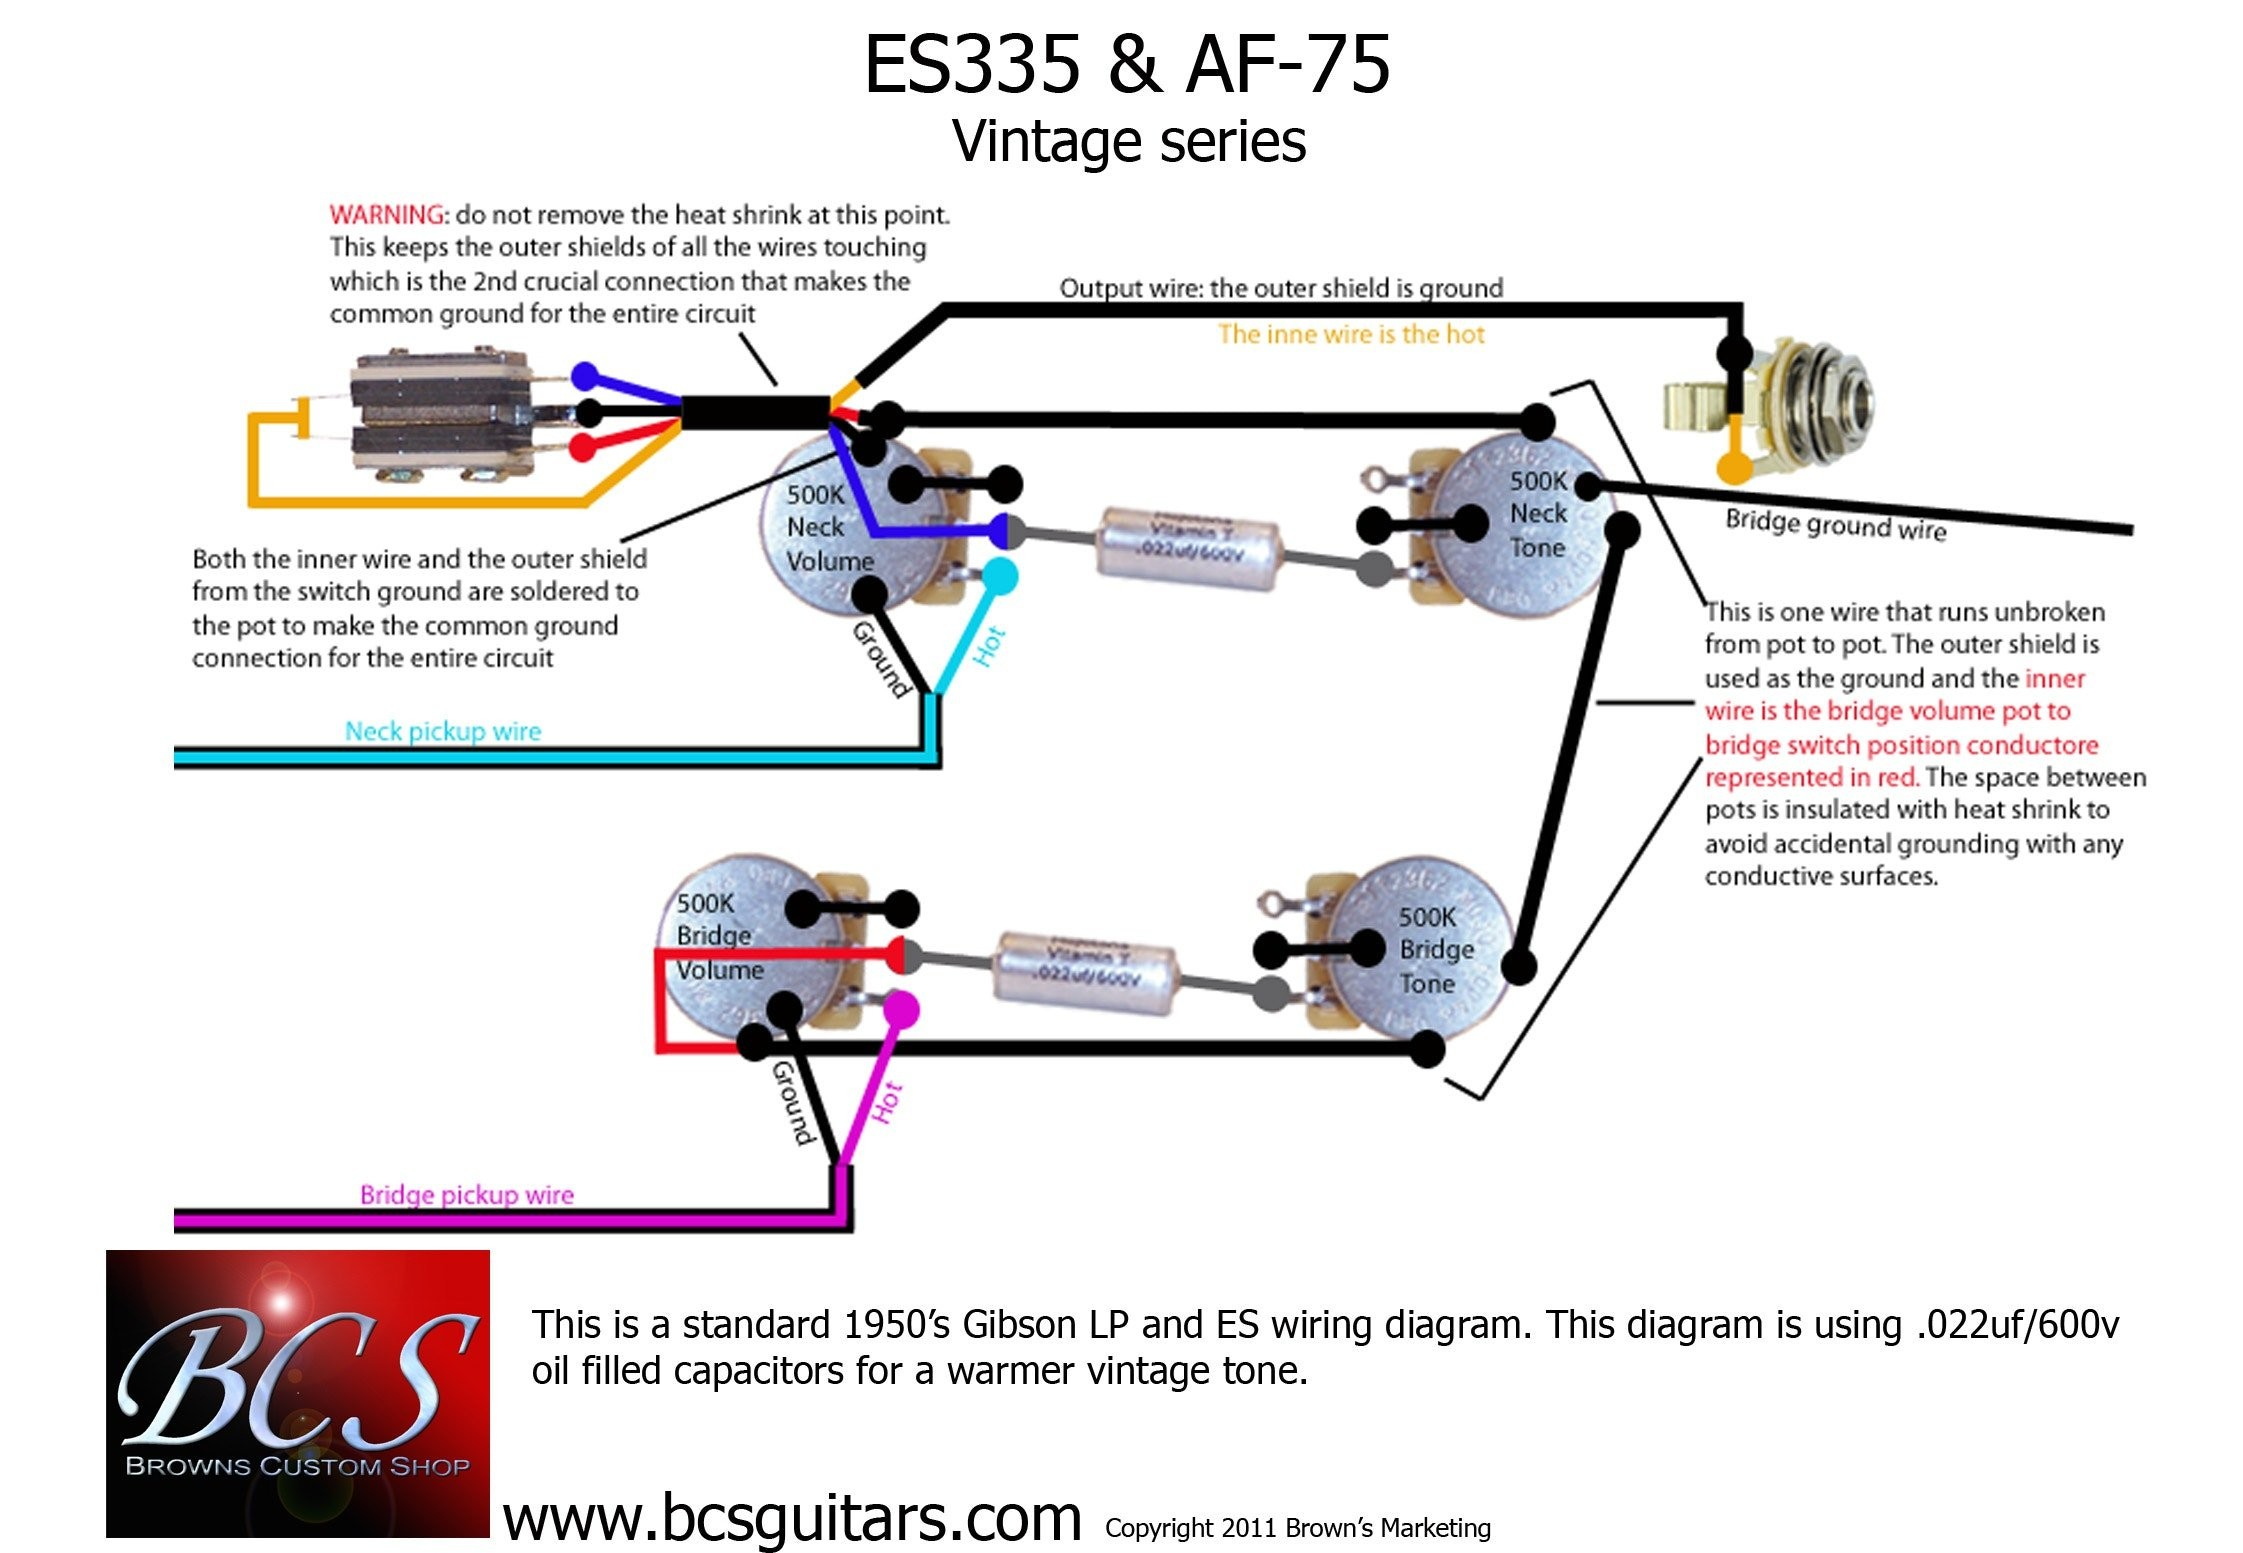 Emg Wiring Diagram Solder For Guitar Best Image 2018 Old Diagrams Amazing